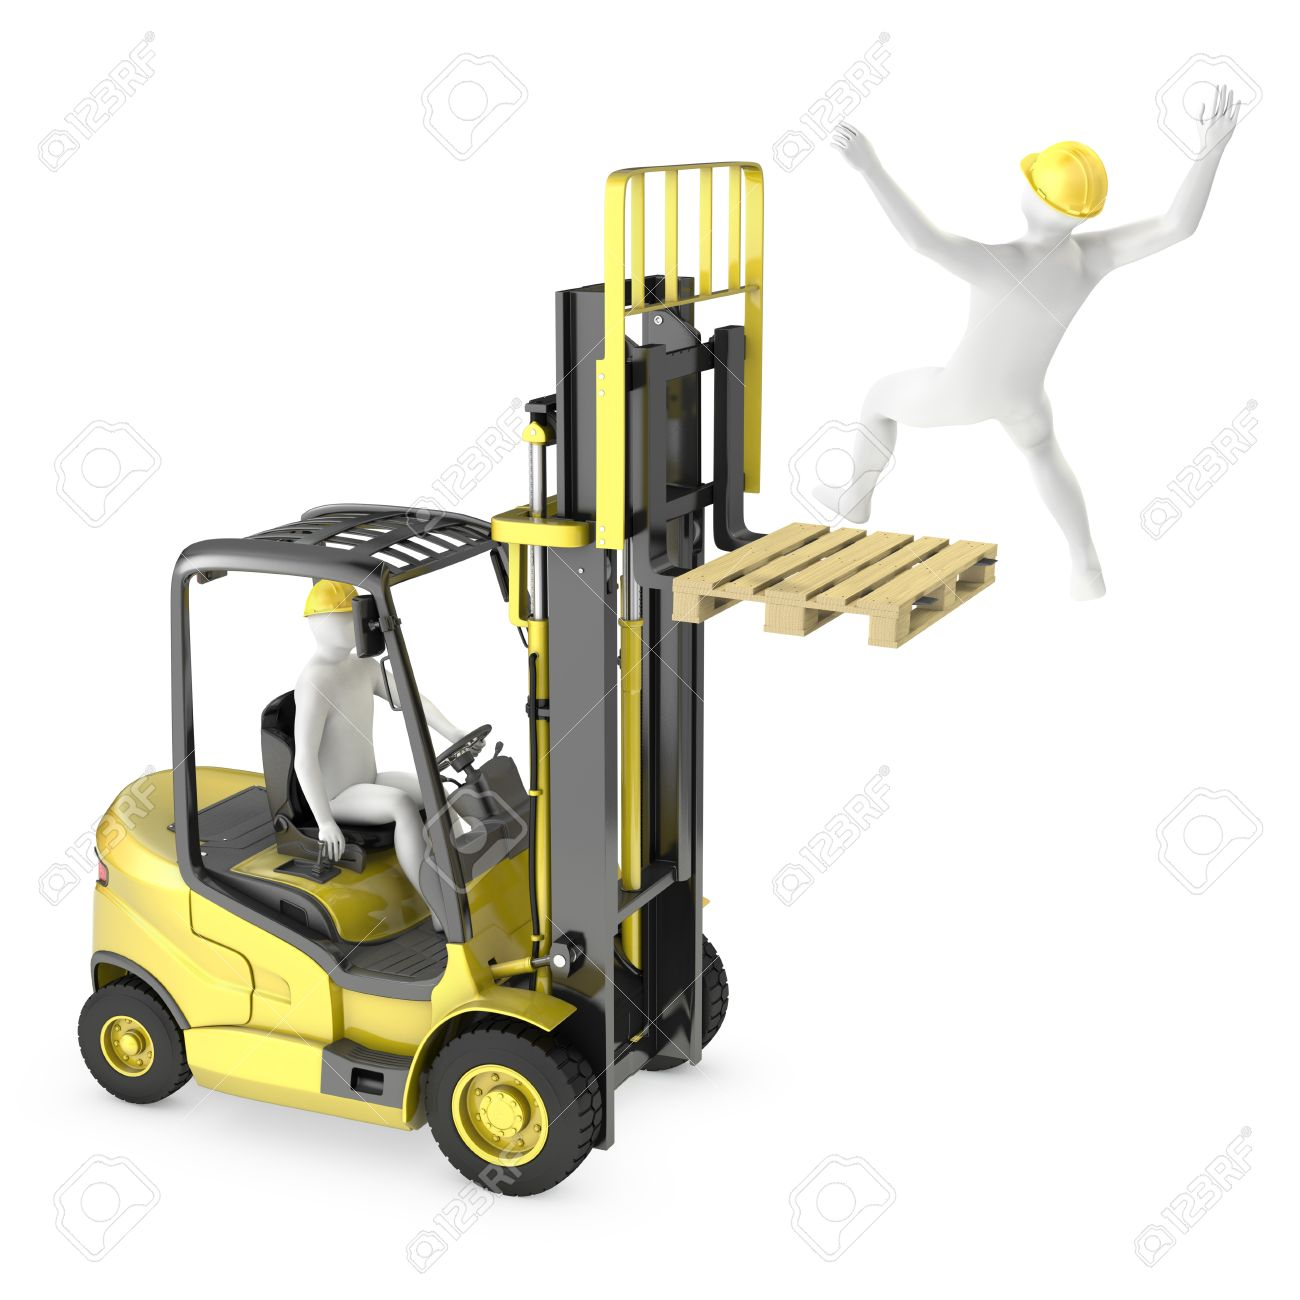 Abstract white man falling from lift truck fork, due to safety violation, isolated on white background Stock Photo - 13487062